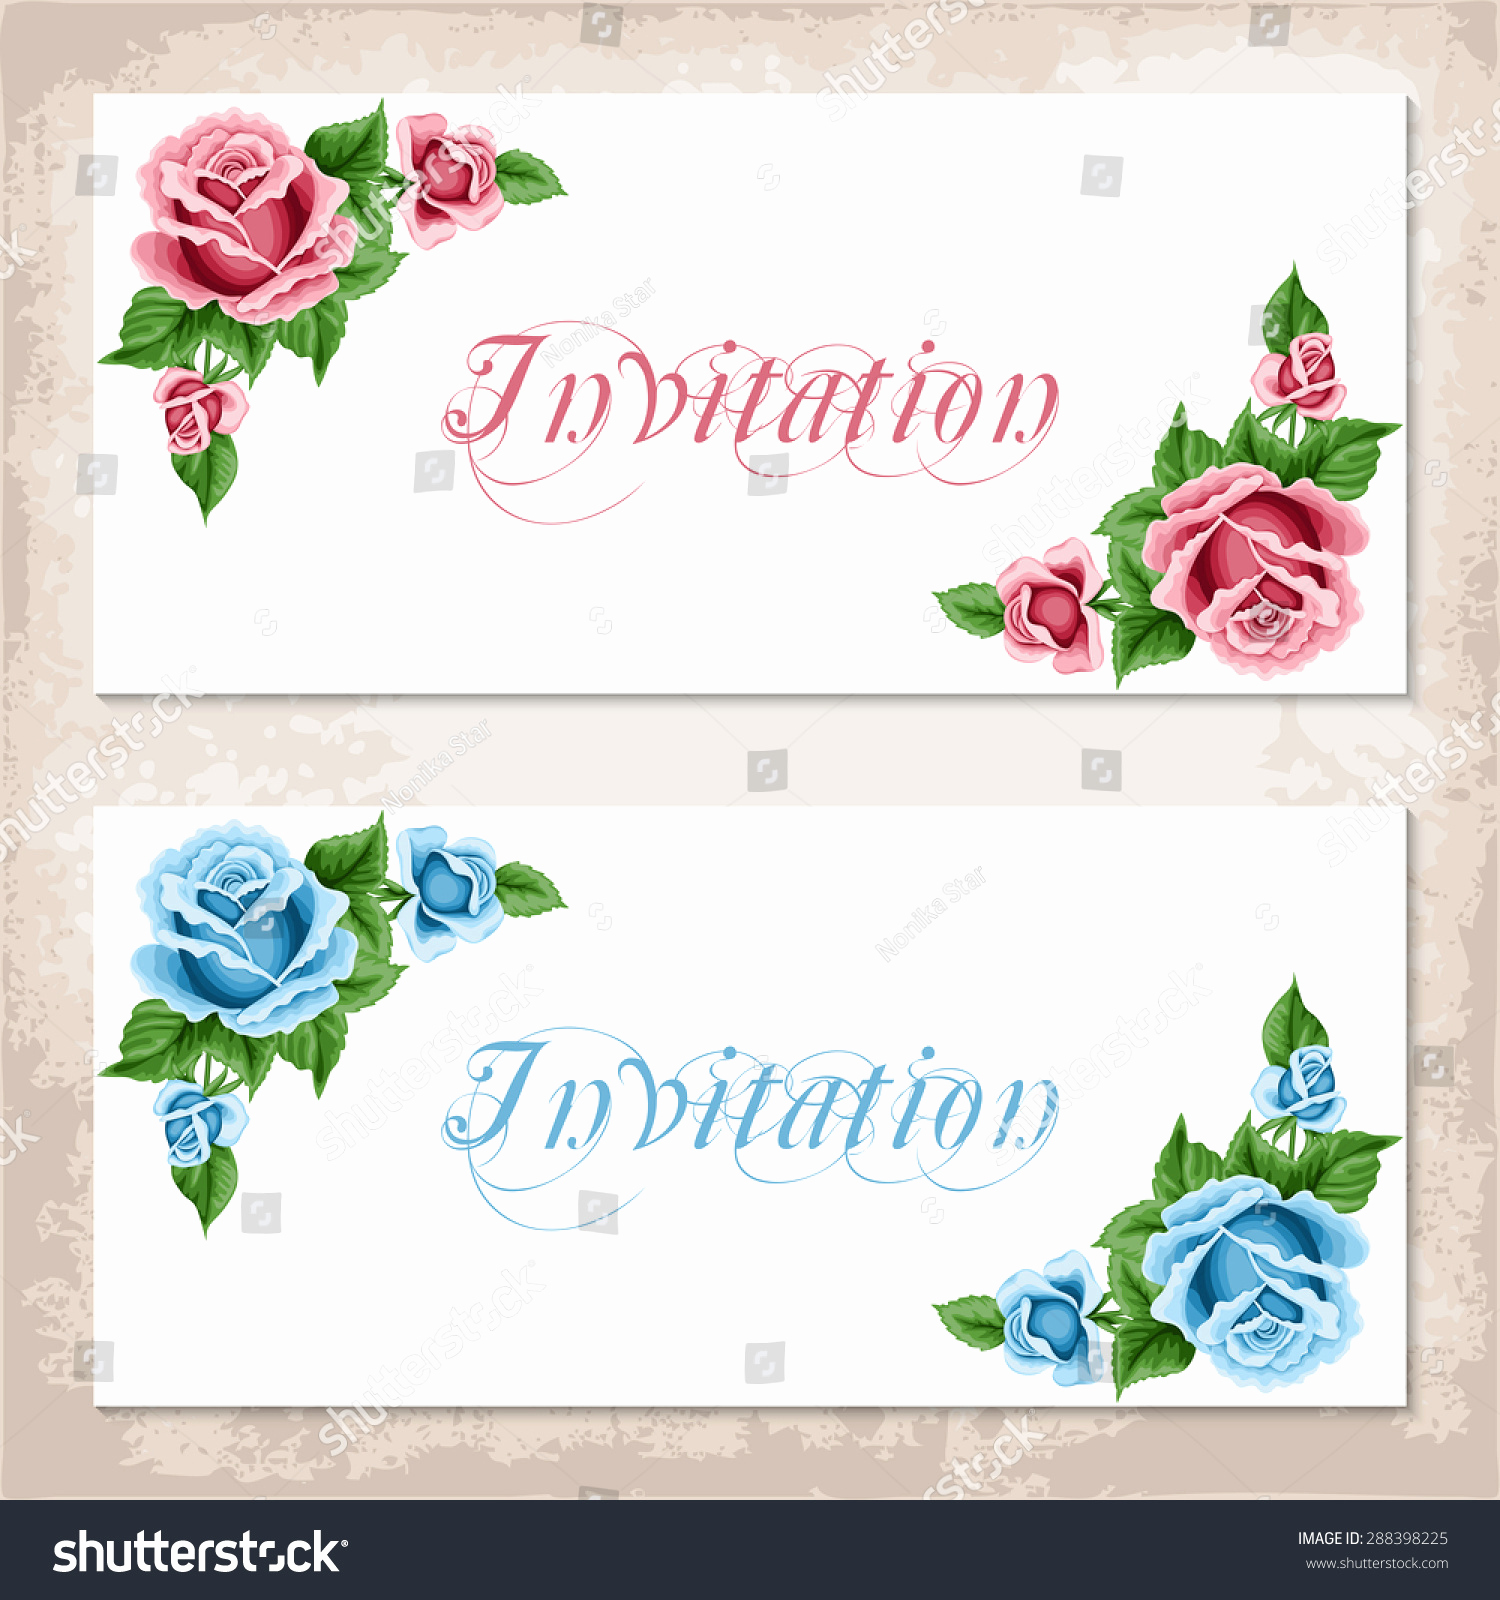 Shabby Chic Invitation Templates Free Fresh Vintage Invitation Template Roses Shabby Chic Stock Vector